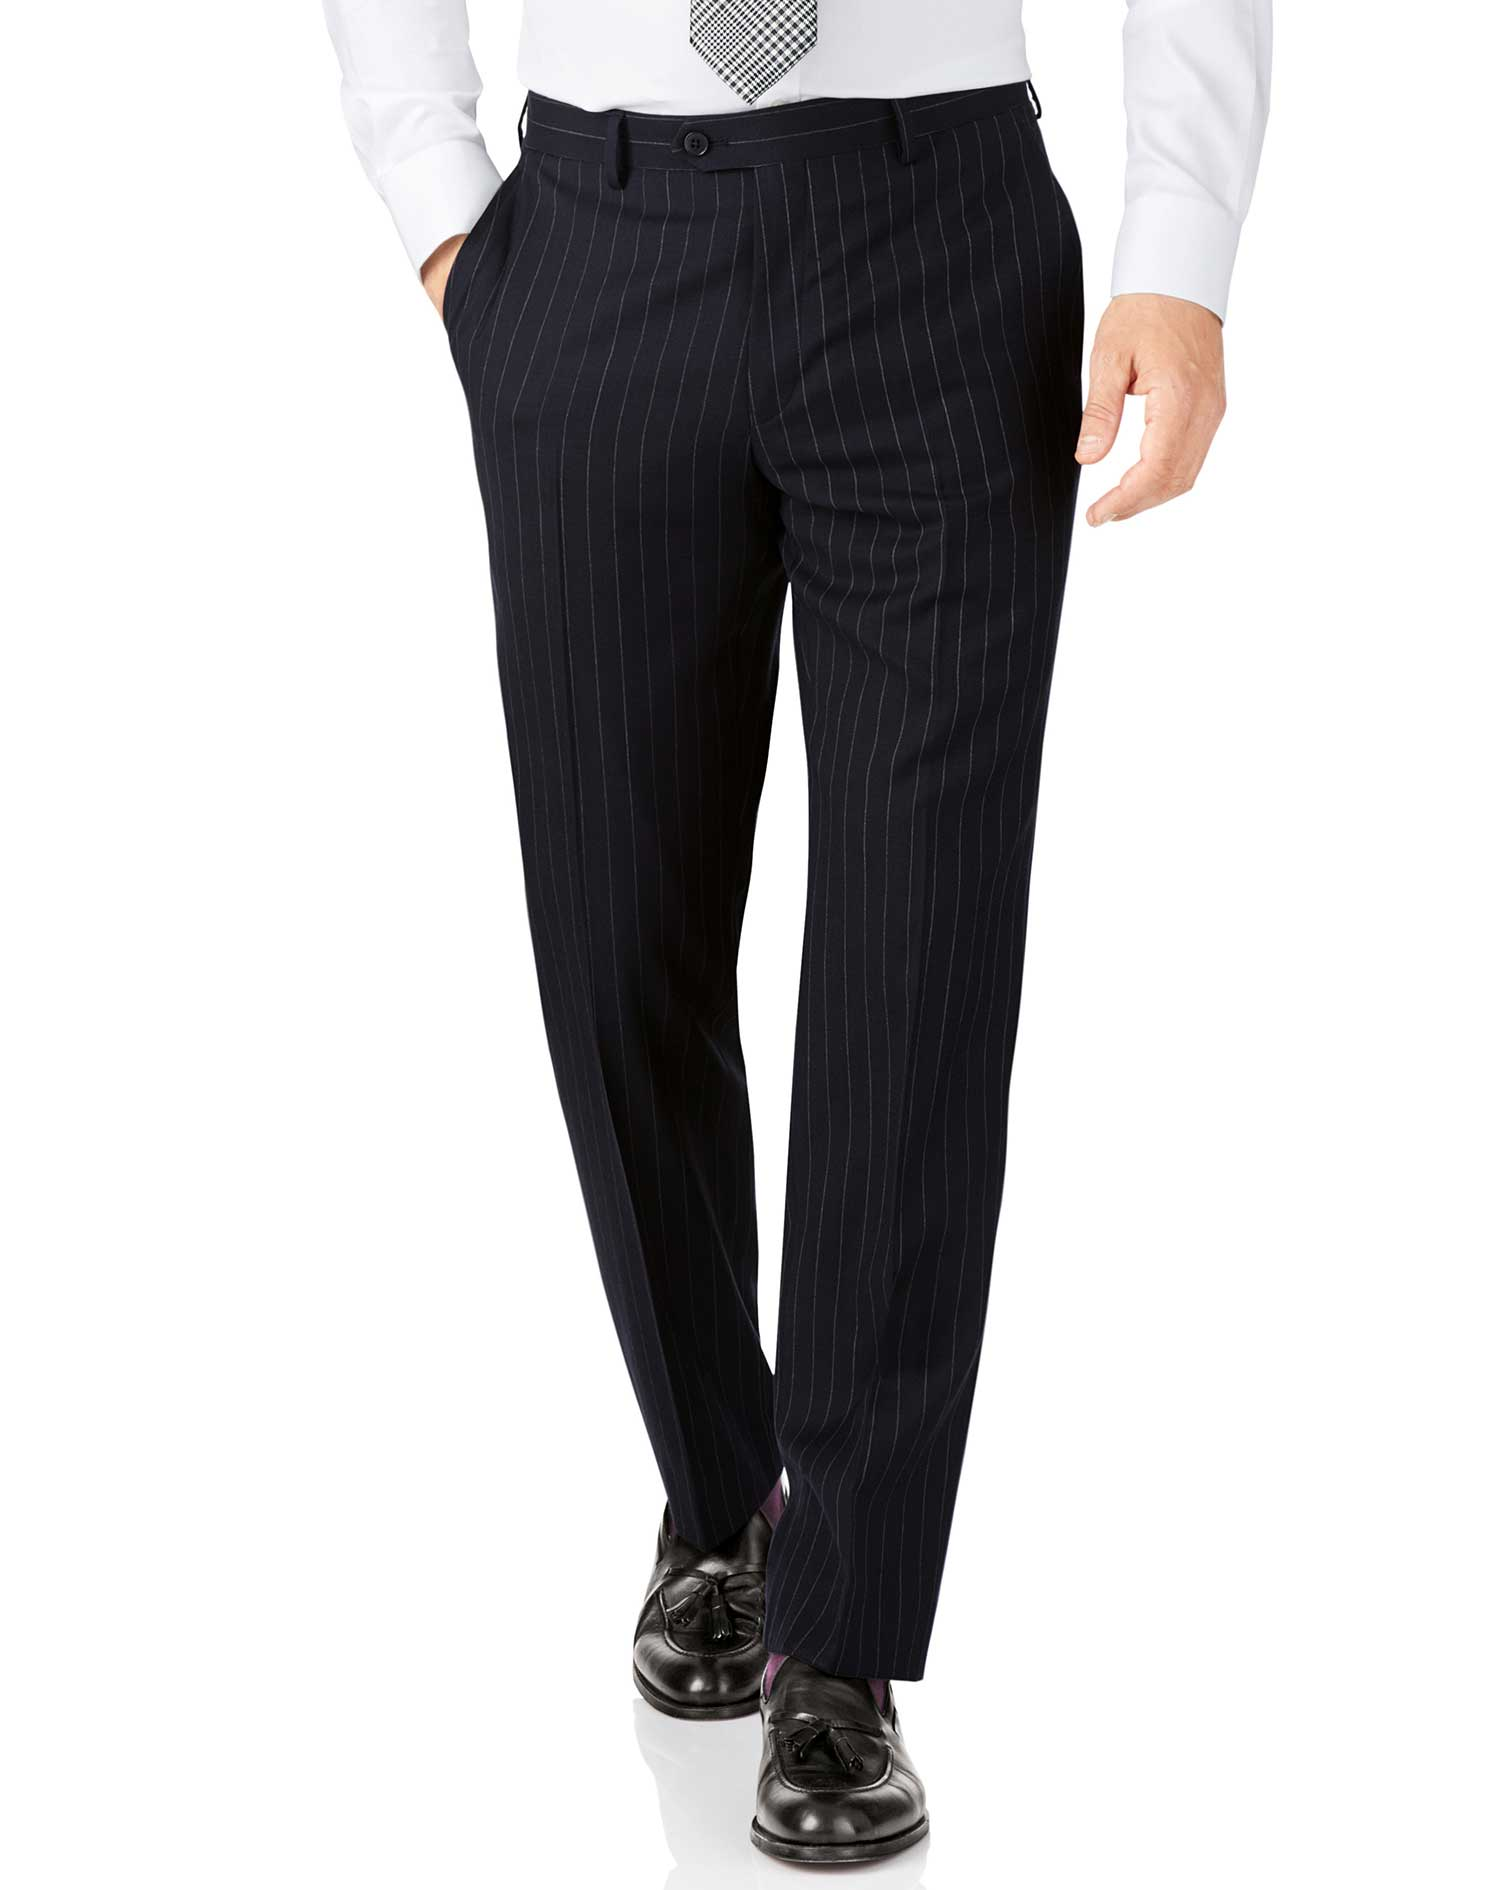 Navy Stripe Classic Fit Twill Business Suit Trousers Size W32 L38 by Charles Tyrwhitt